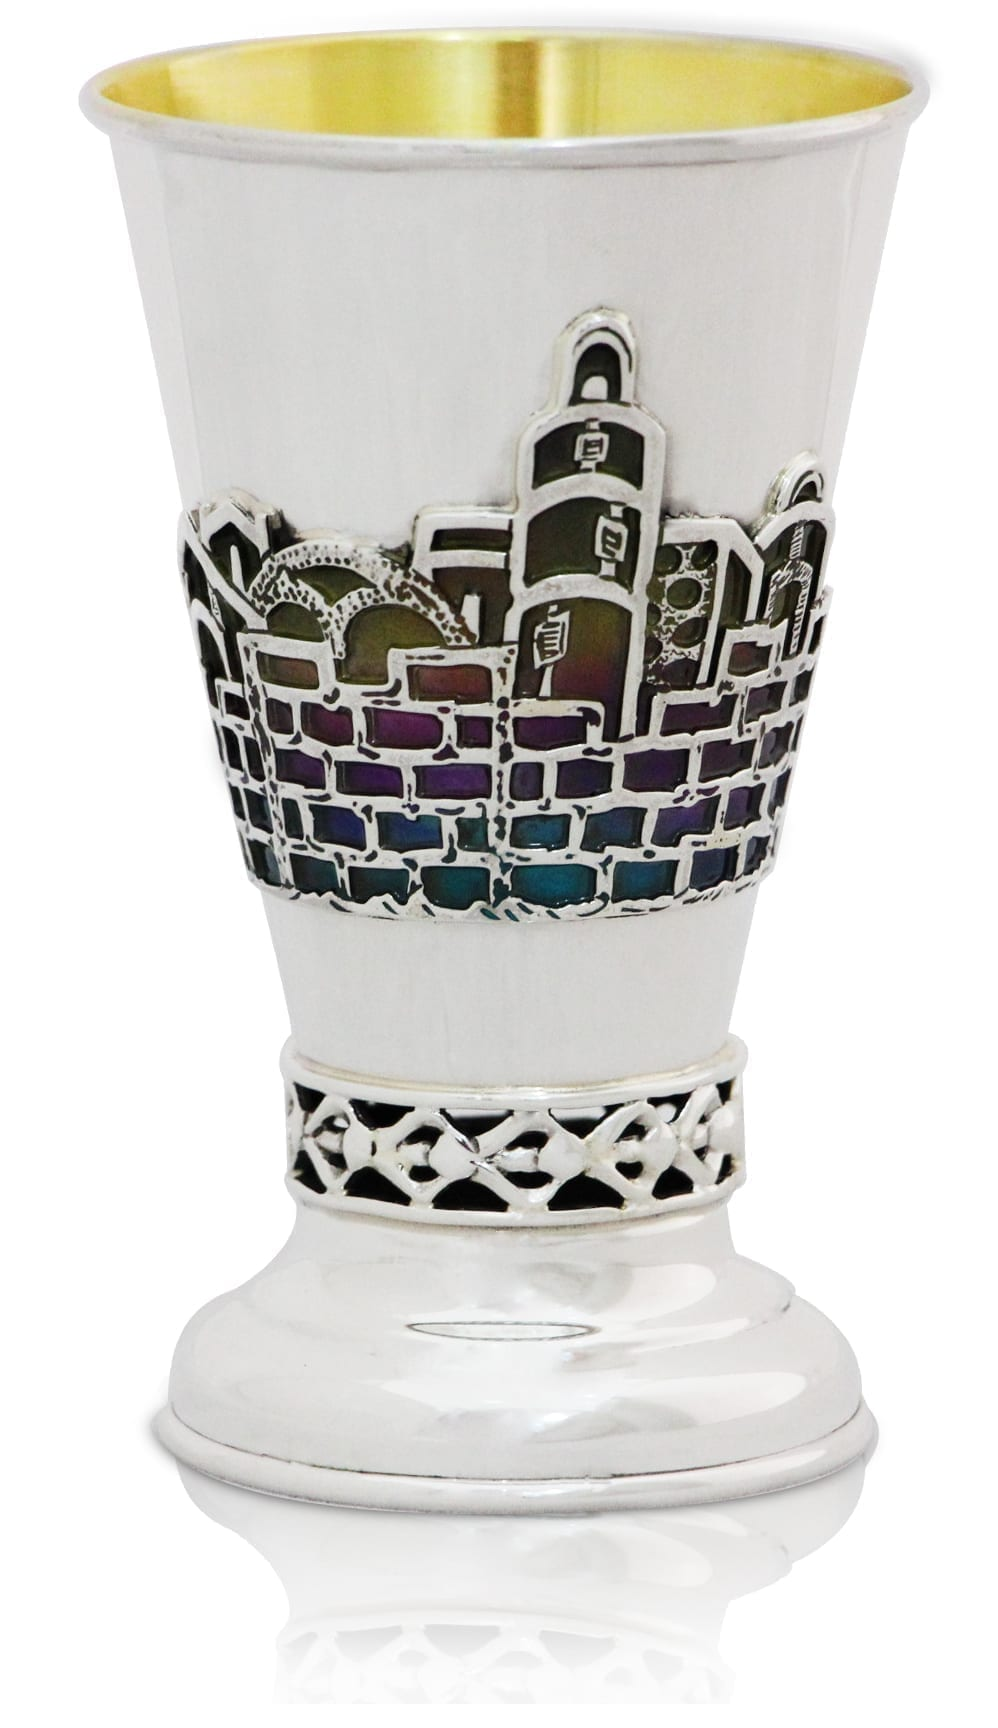 Jerusalem Sterling silver kiddush cup